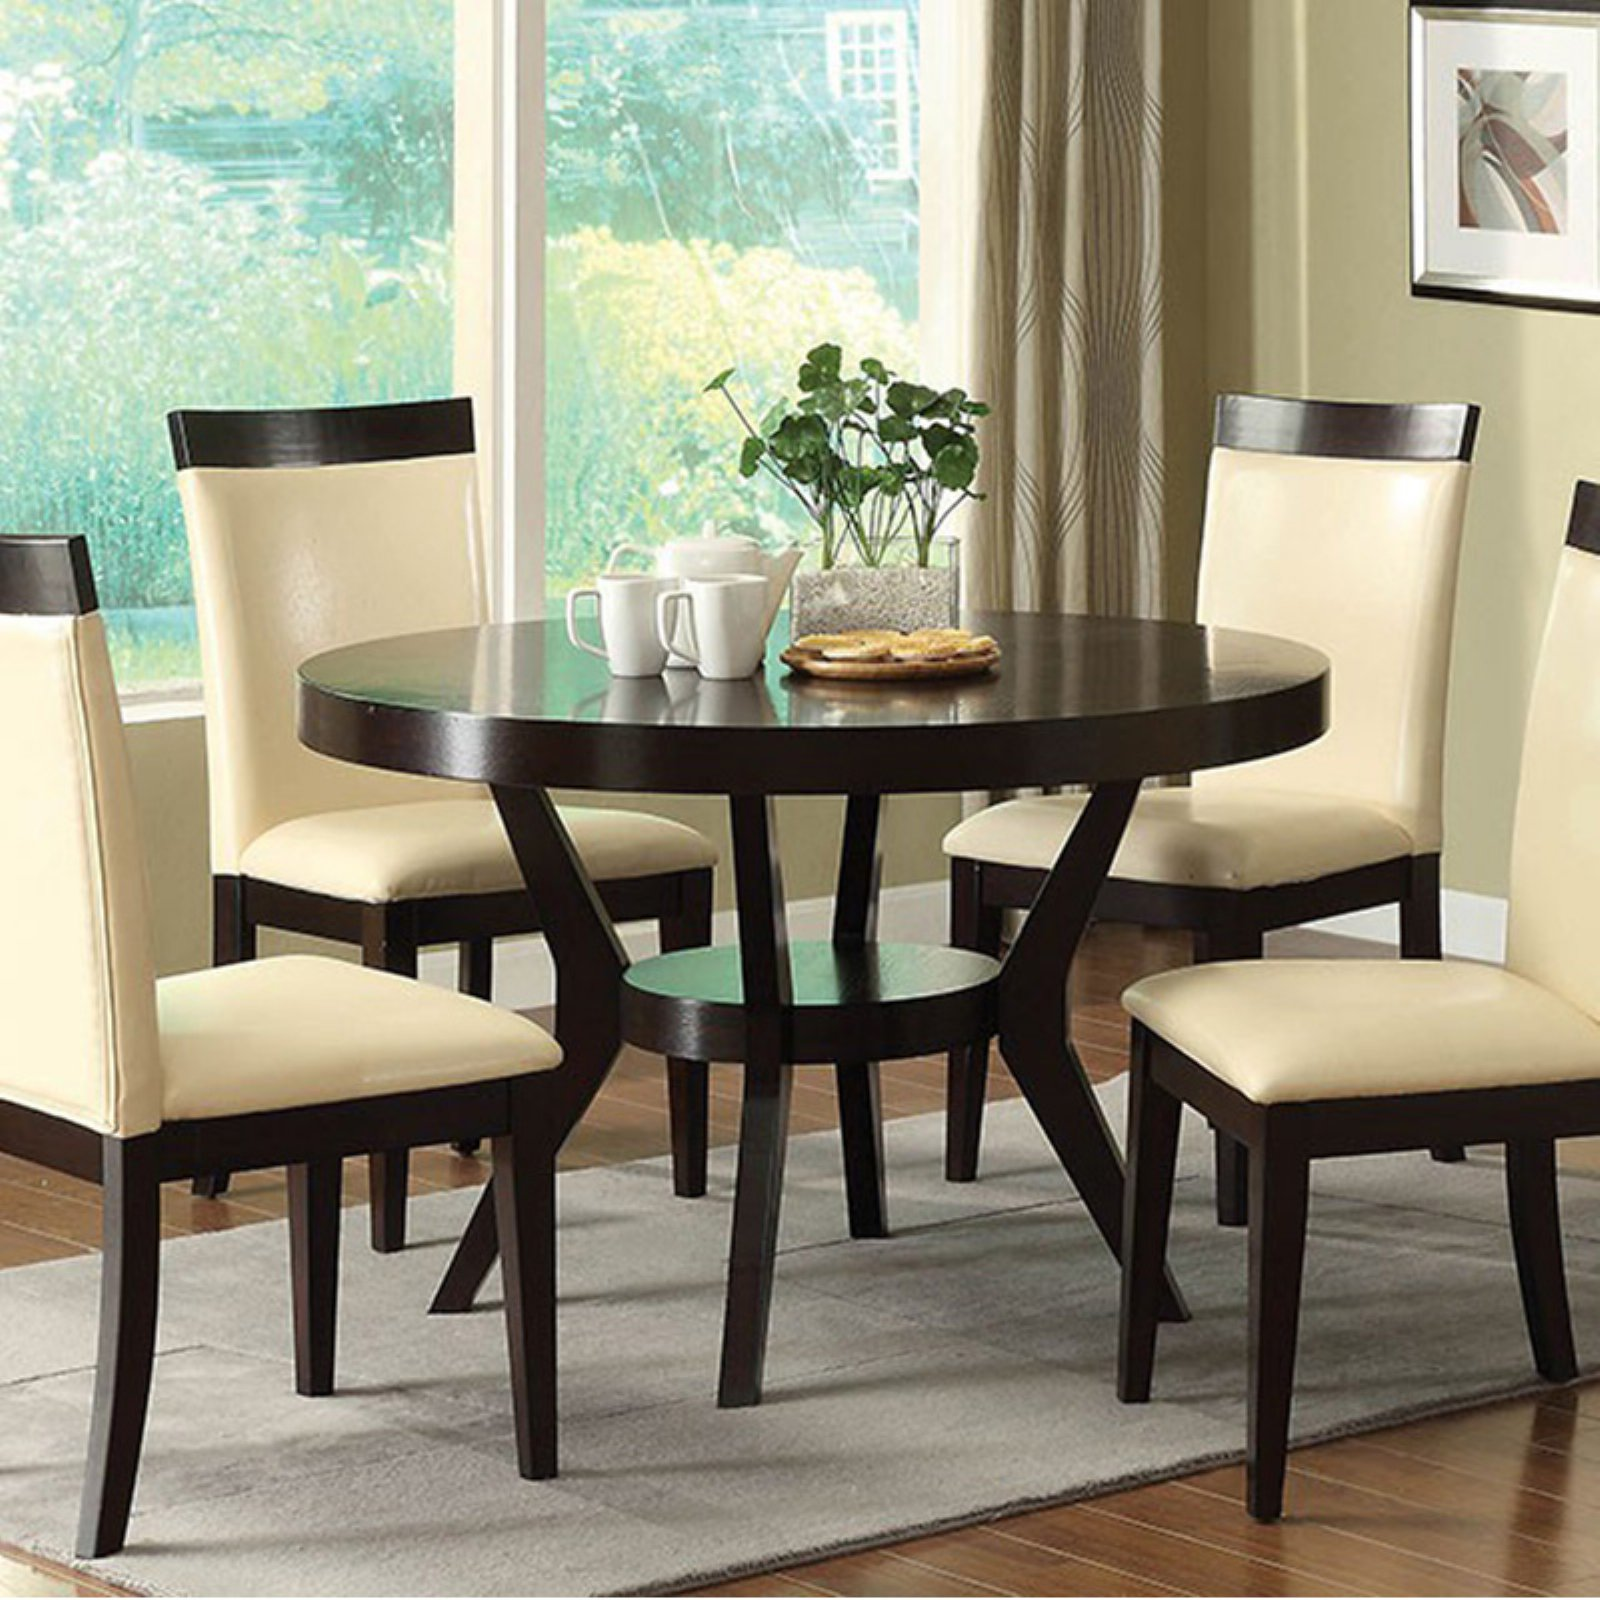 Downtown I Contemporary Round Dining Table, Espresso